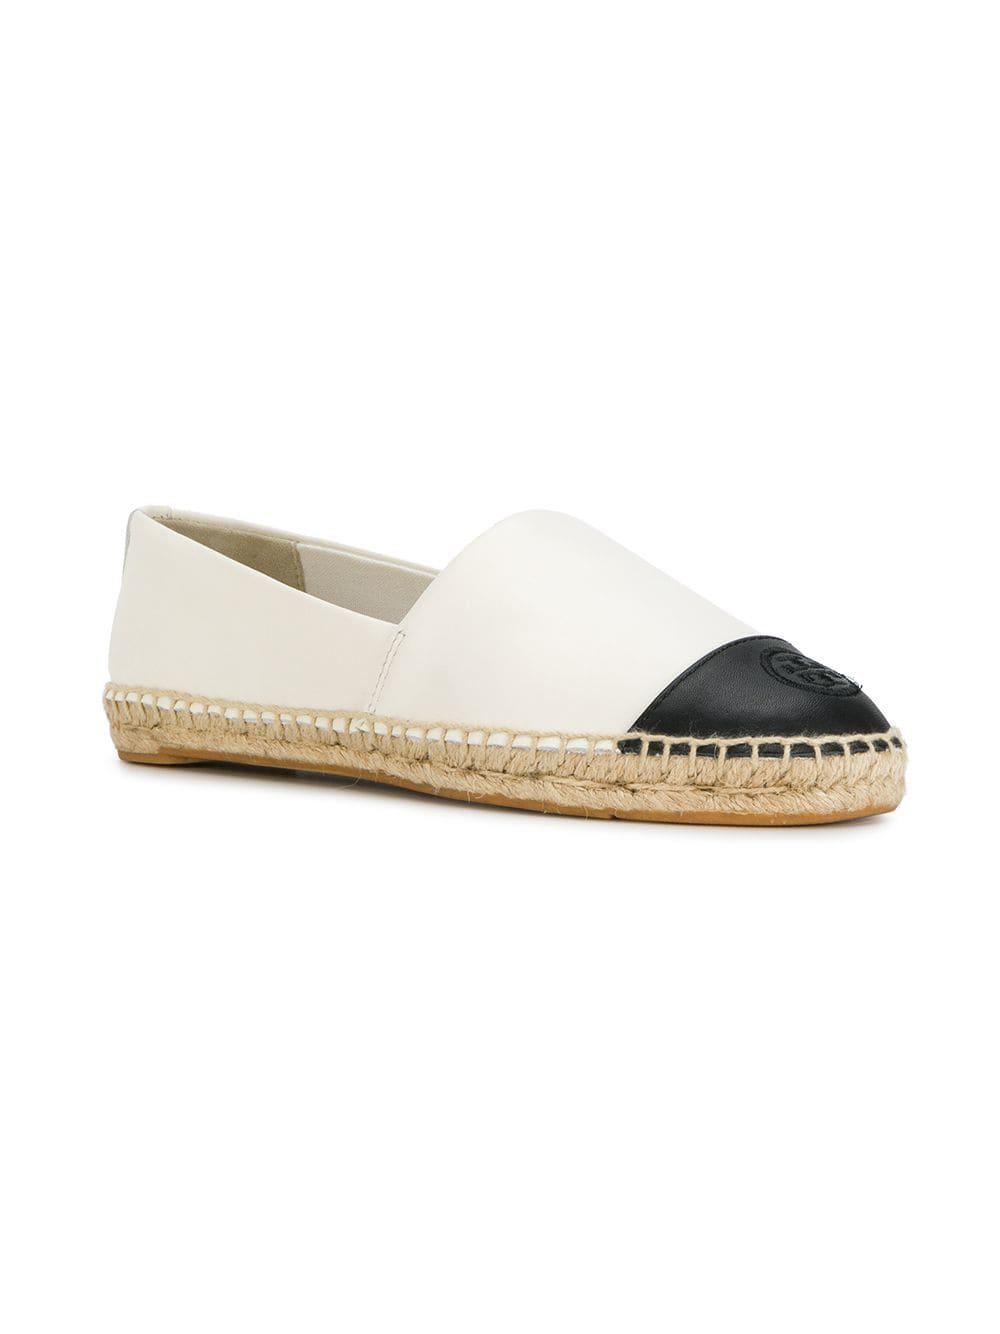 0ae0f19f716 Lyst - Tory Burch Metallic Espadrille Flats in White - Save 58%